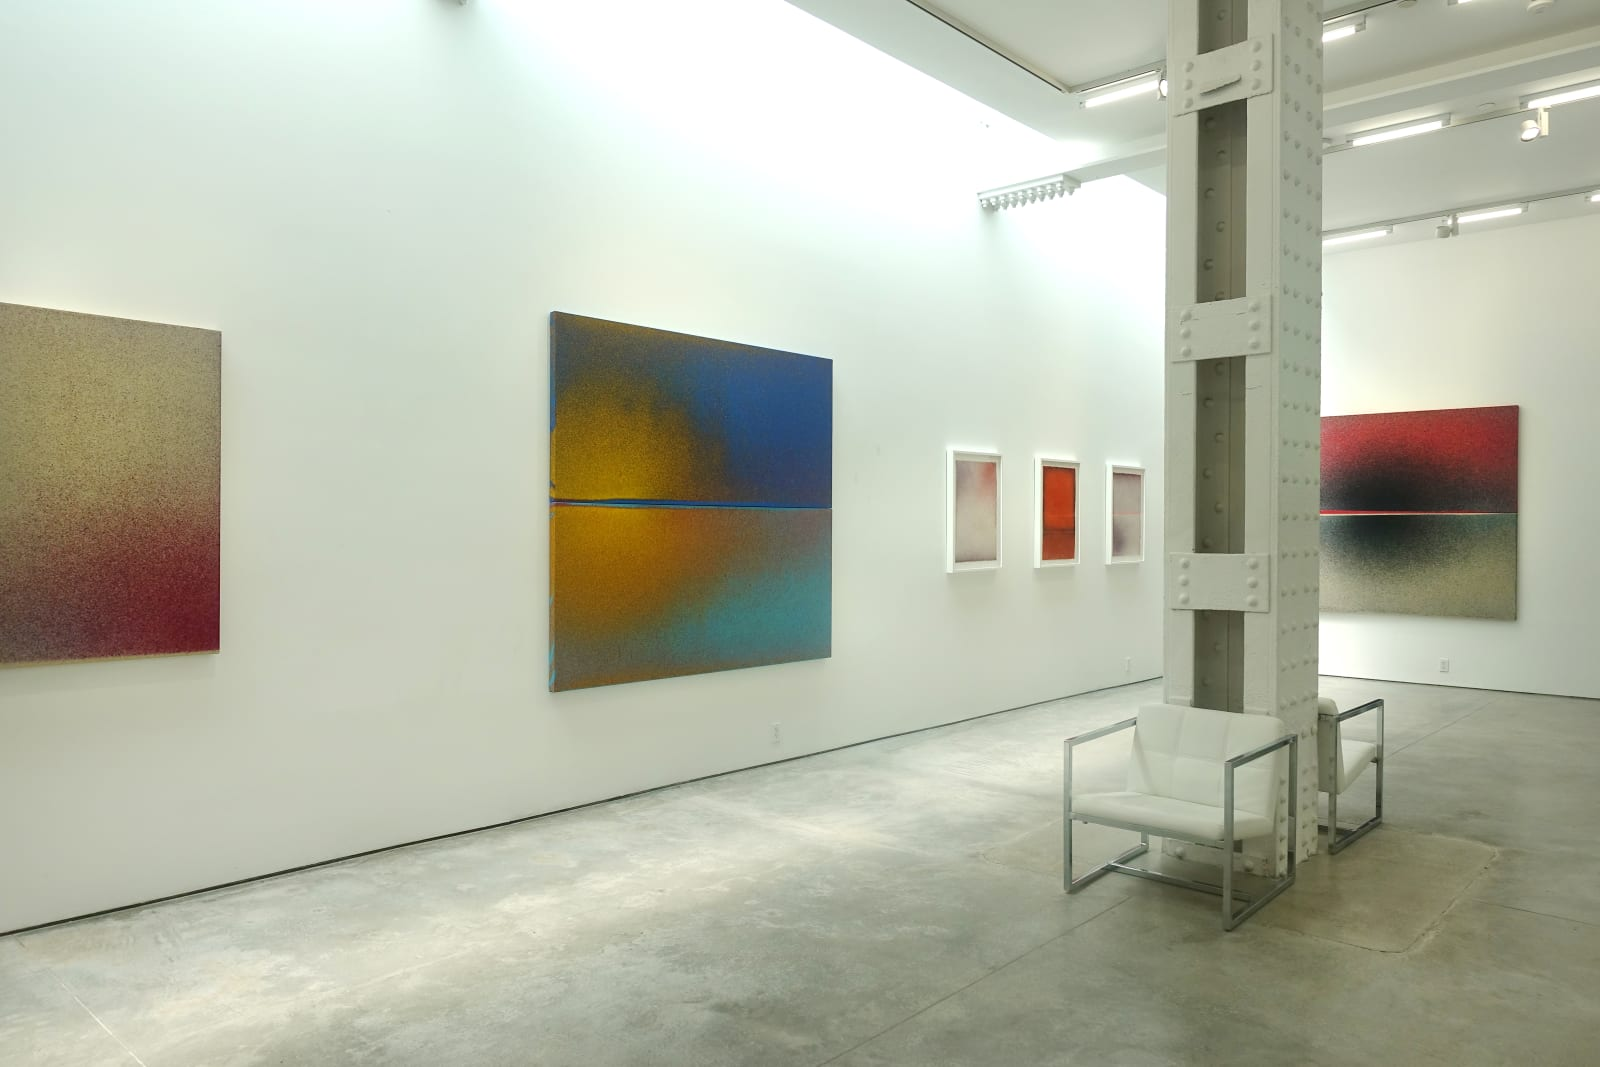 Hollis Taggart: Project Space, 507 West 27th Street, New York (2019)